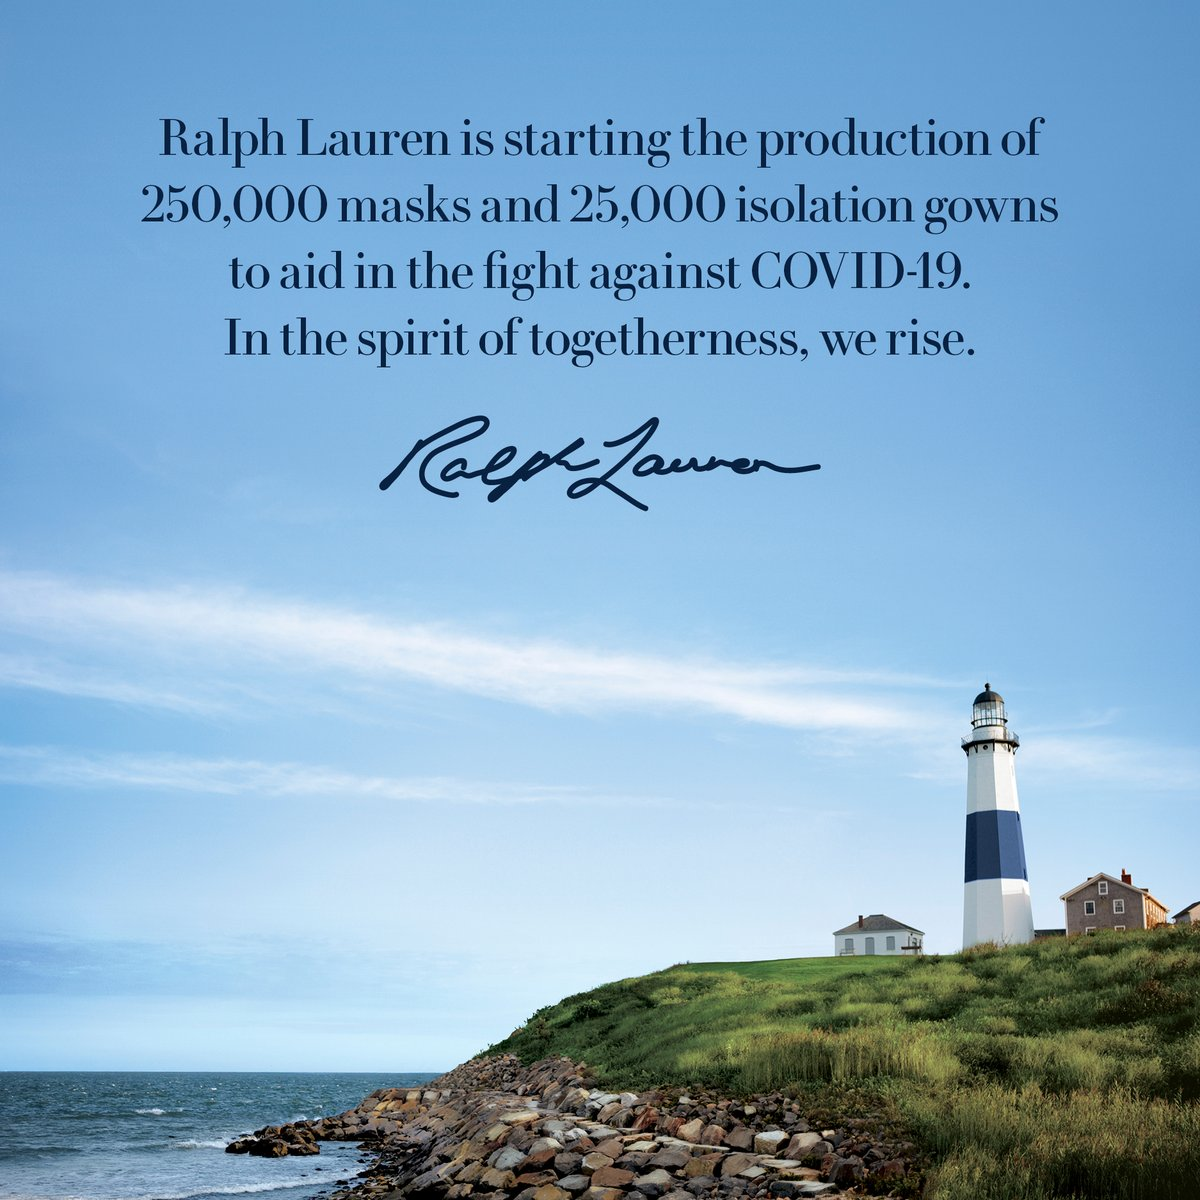 The Ralph Lauren Corporation is starting the production of 250,000 masks and 25,000 isolation gowns with our U.S. manufacturing partners to support the fight against COVID-19